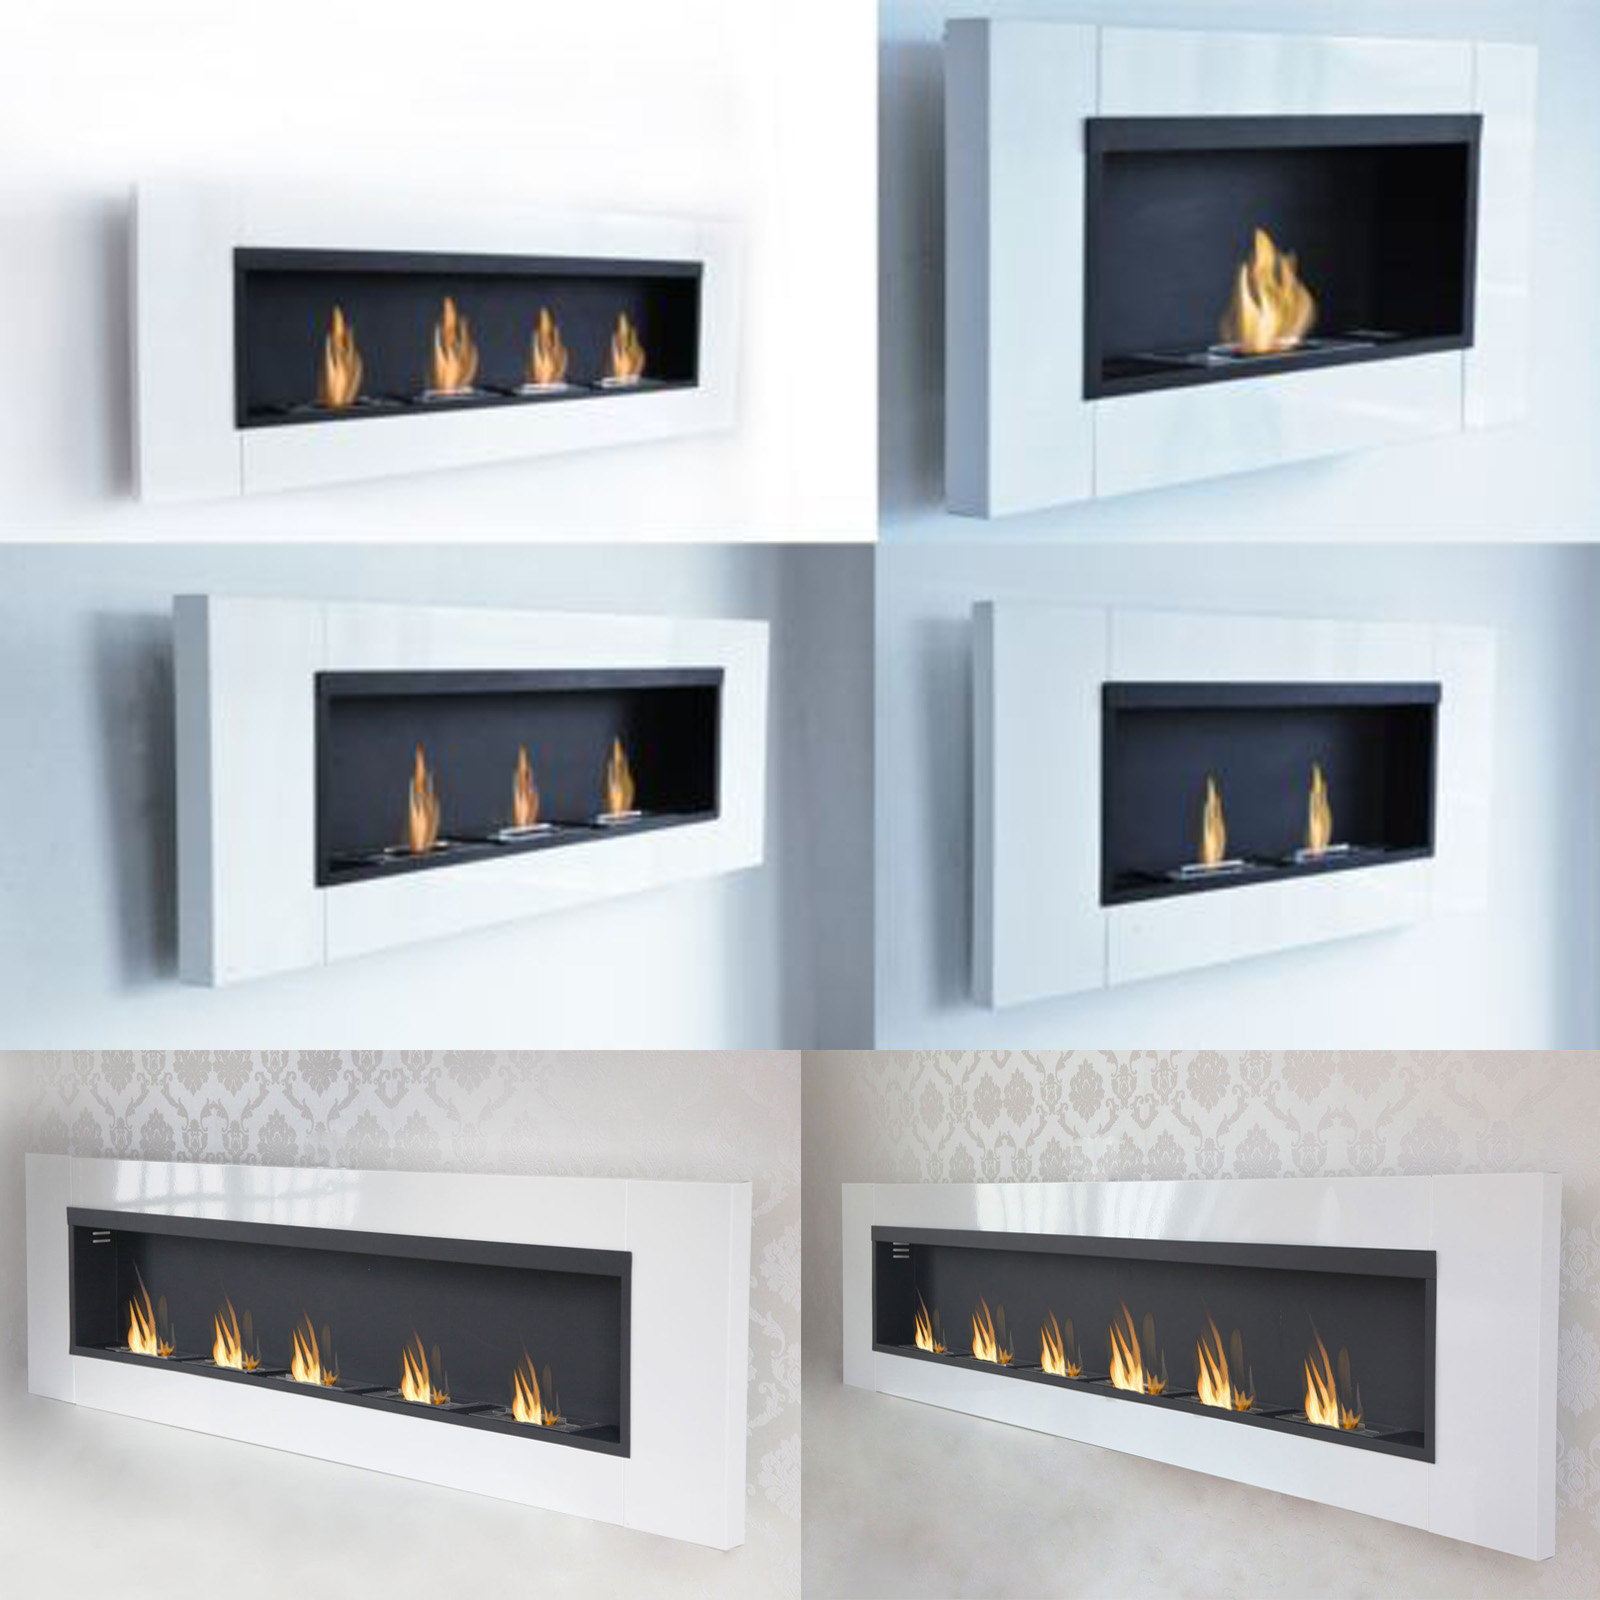 bio ethanol wandkamin chemin e gel kamin gelkamin fireplace tischkamin. Black Bedroom Furniture Sets. Home Design Ideas